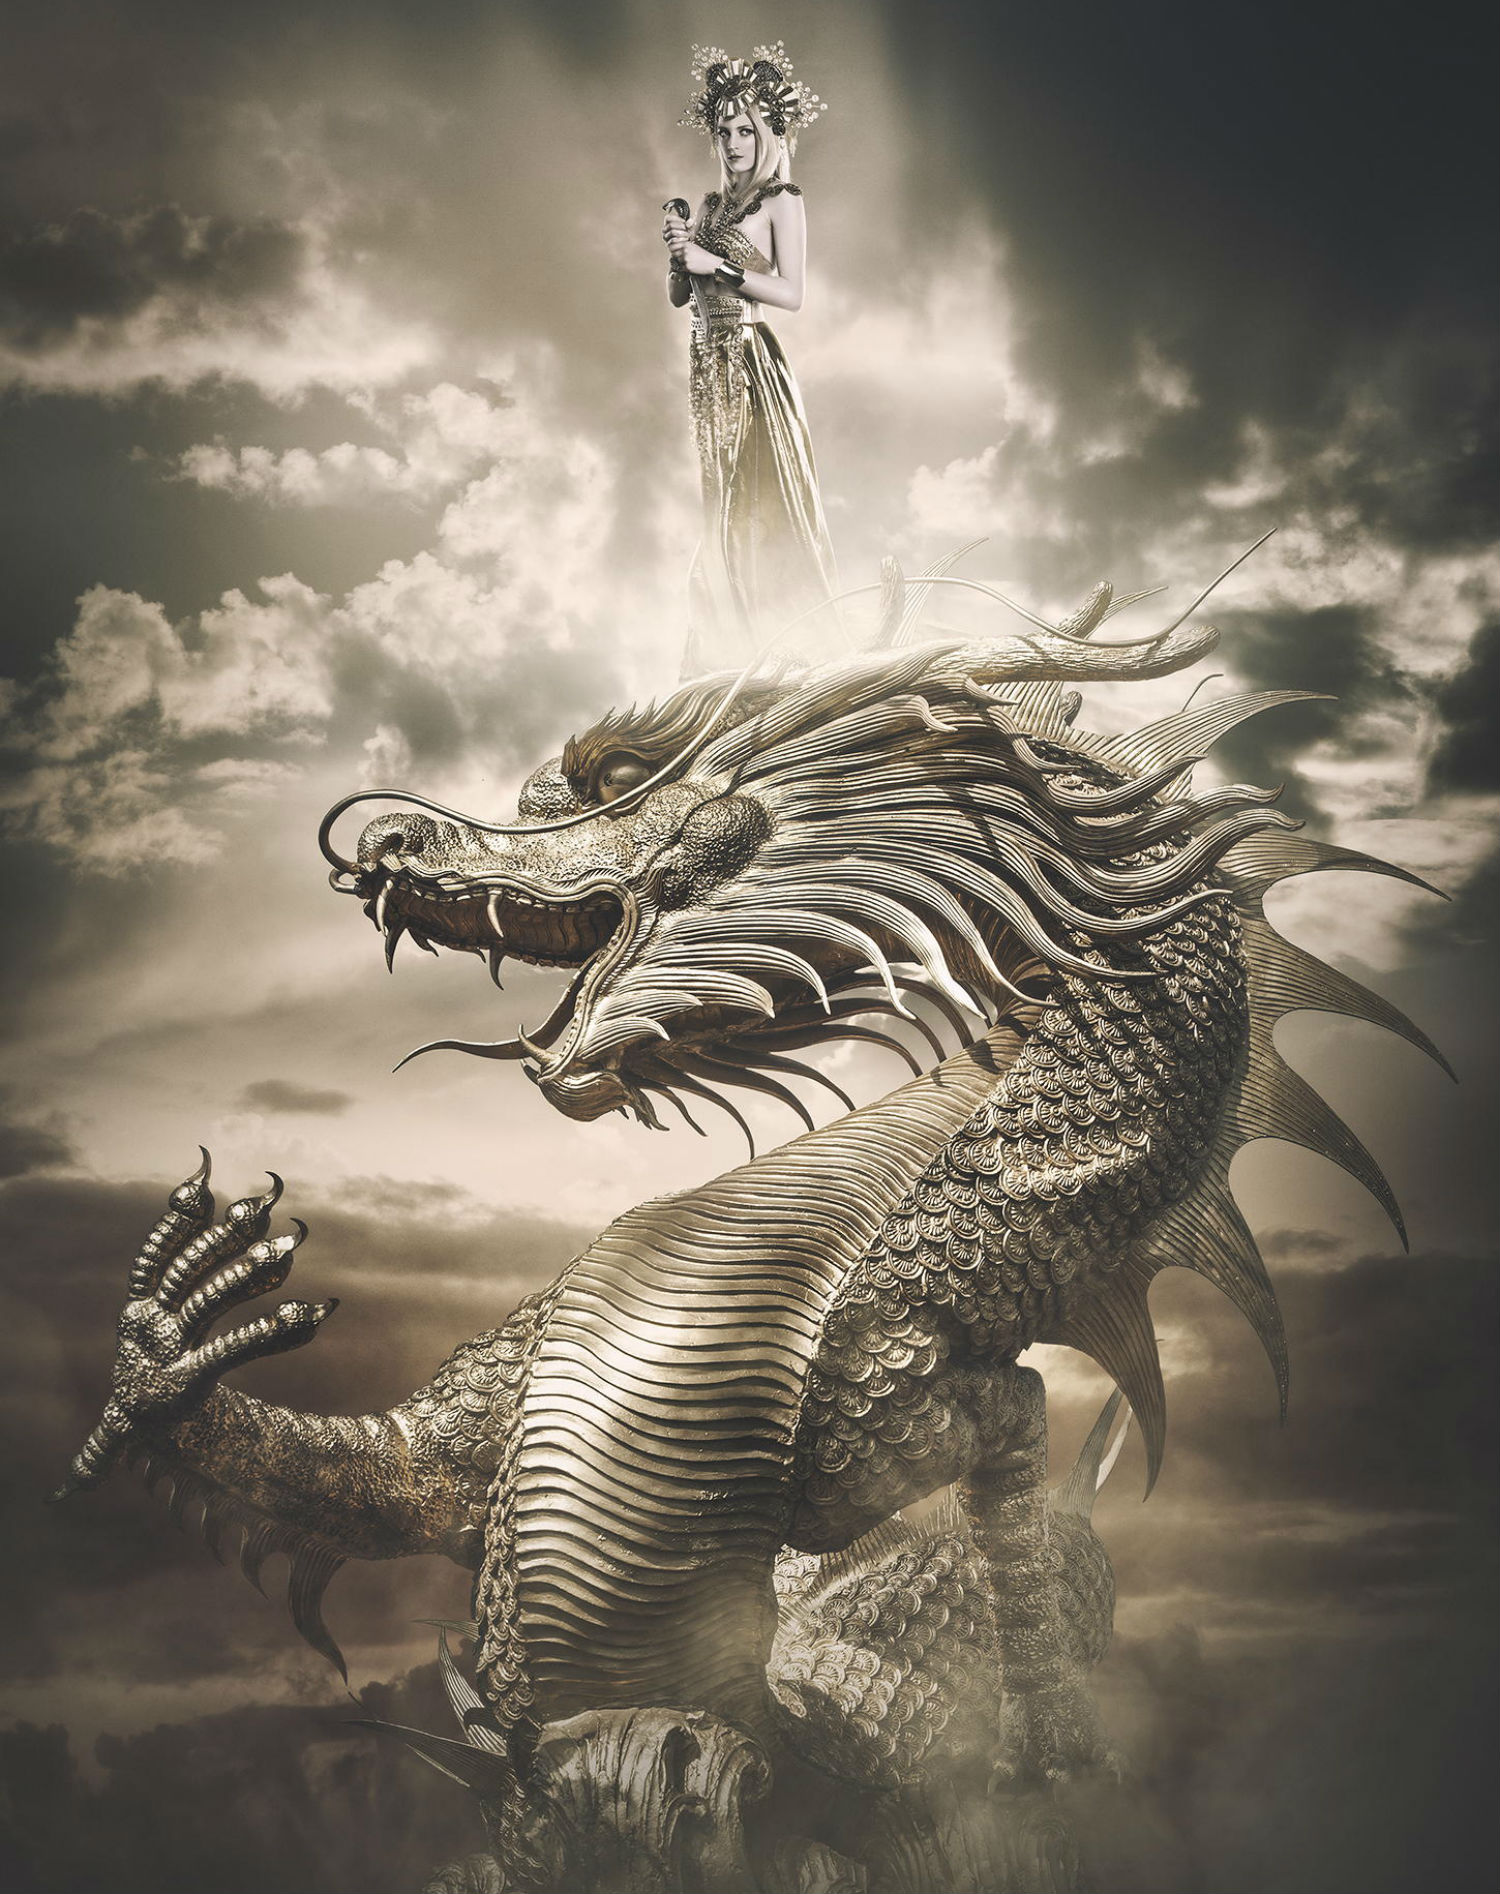 rebecca saray photography surreal Digital fantasy golden dragon